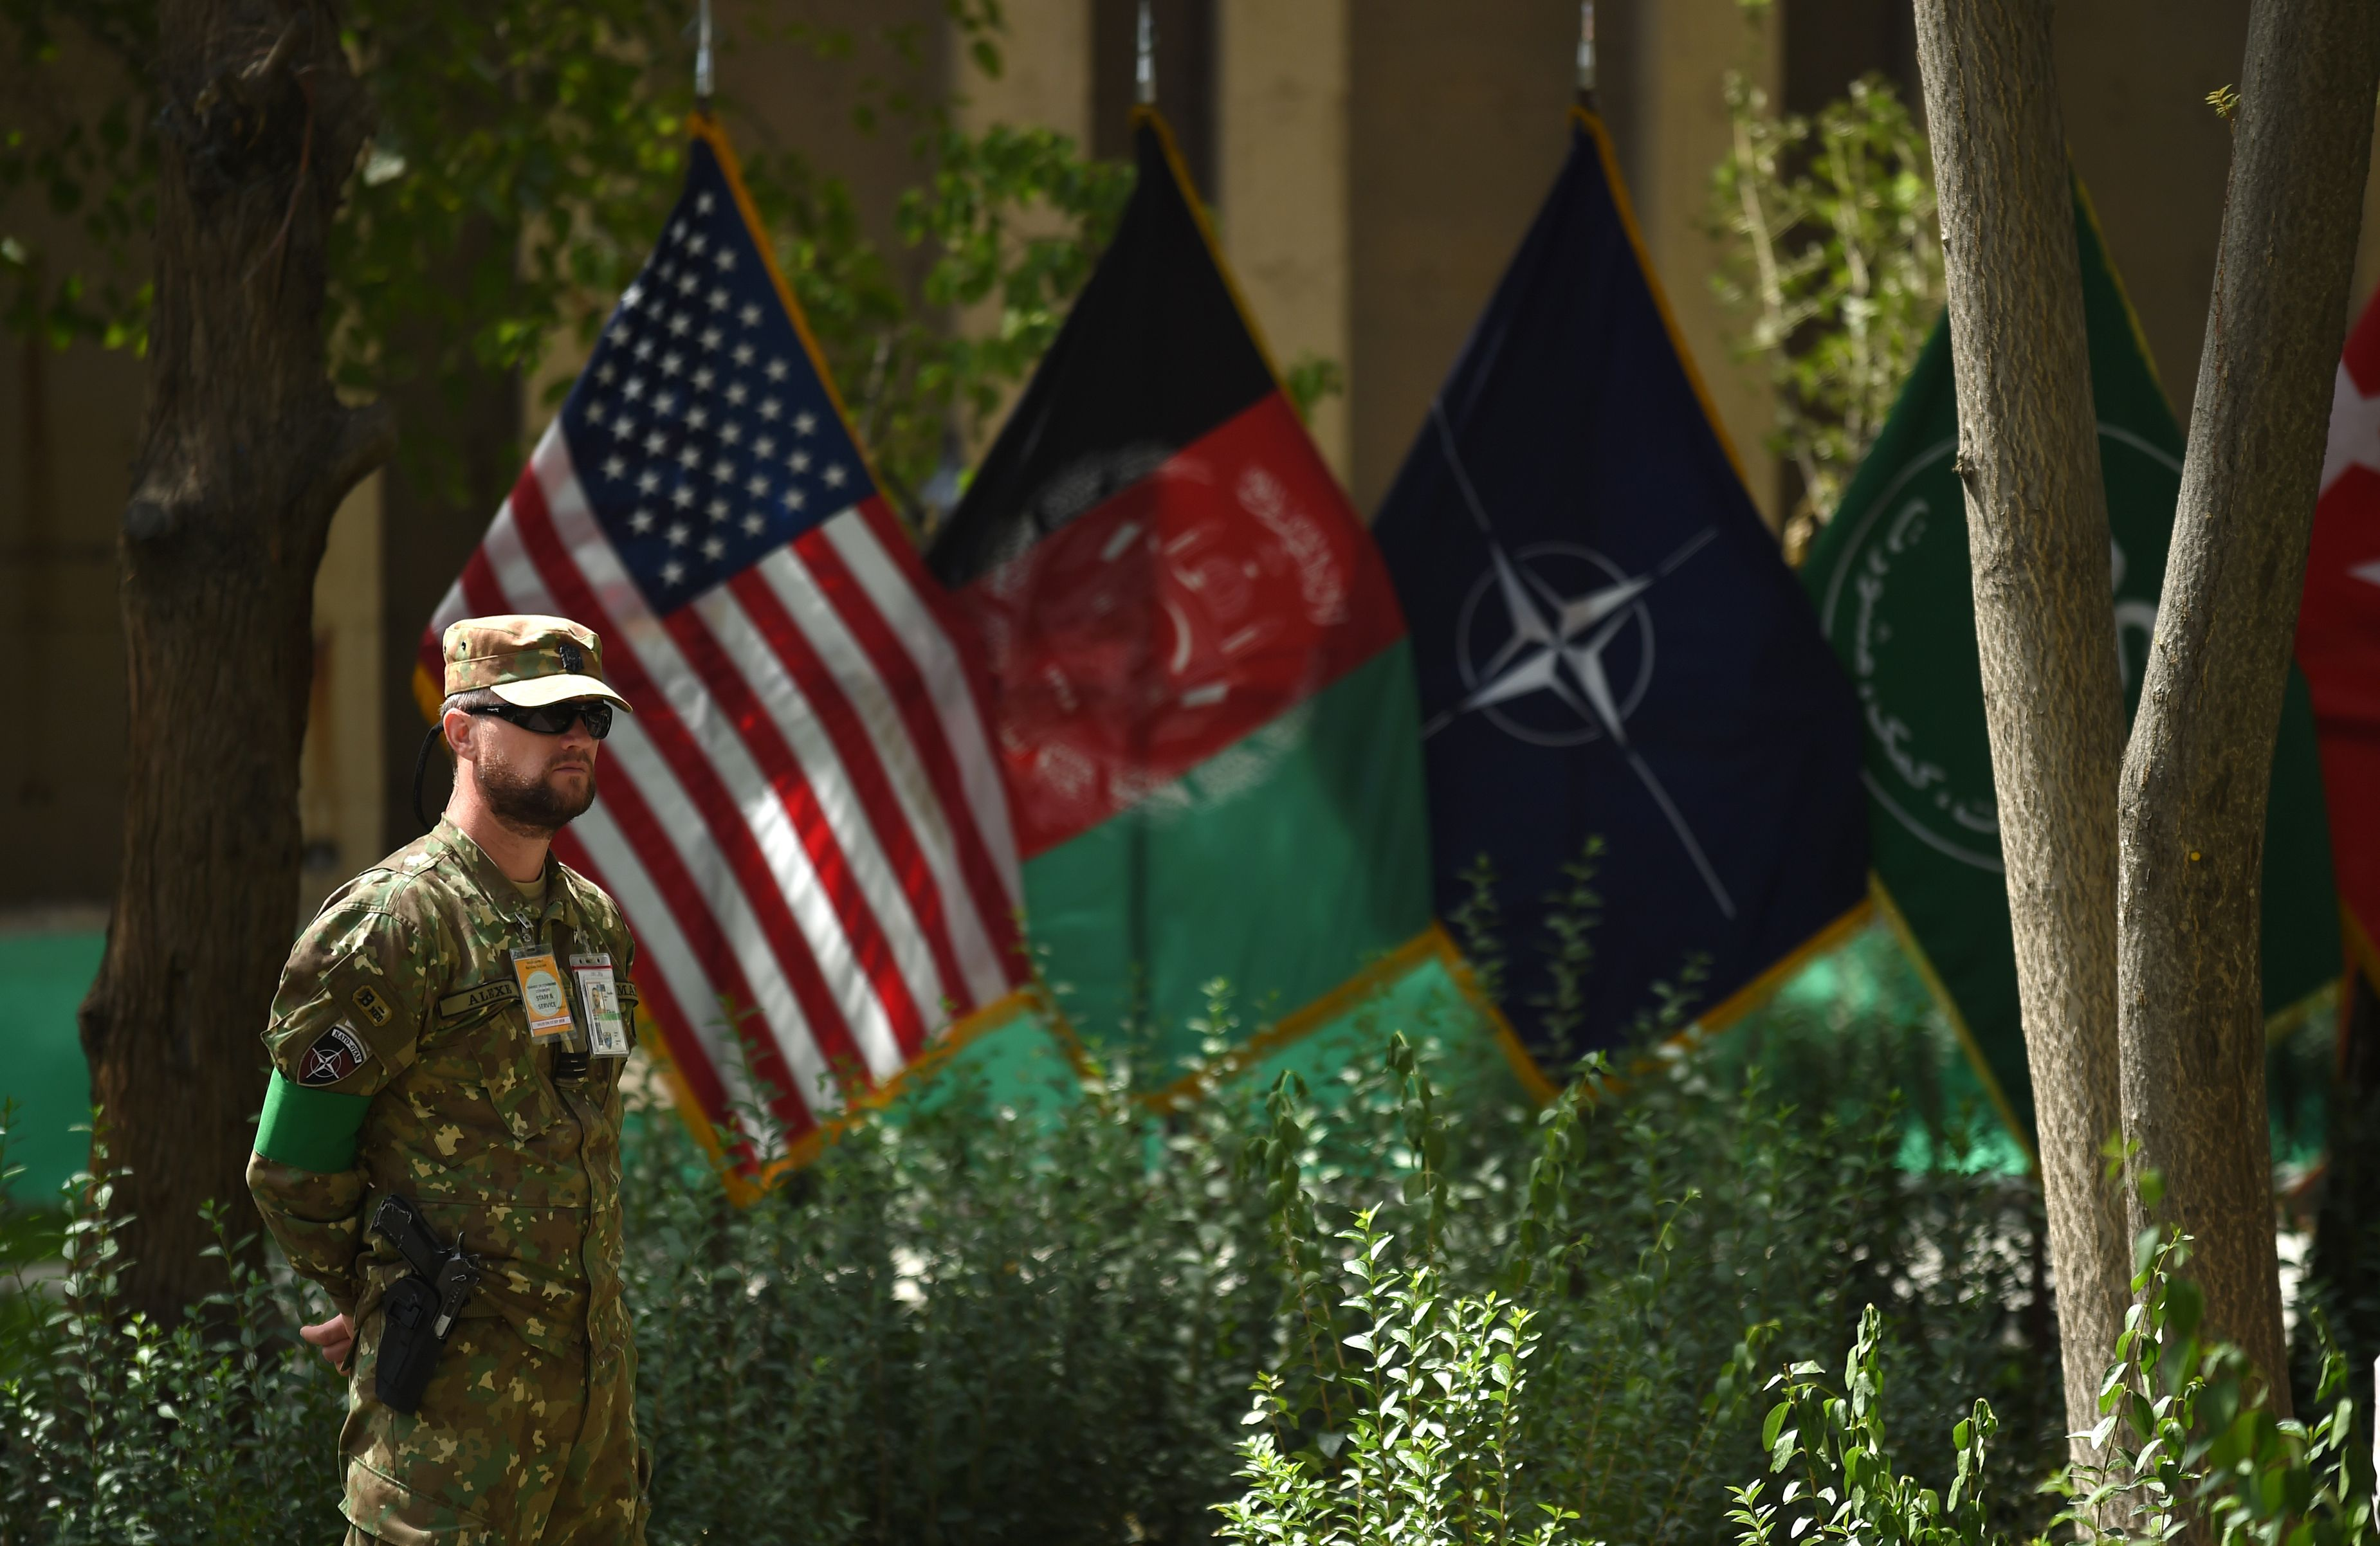 A member of the NATO military forces stands guard during a change of command ceremony at Resolute Support in Kabul, Afghanistan on Sept. 2, 2018.